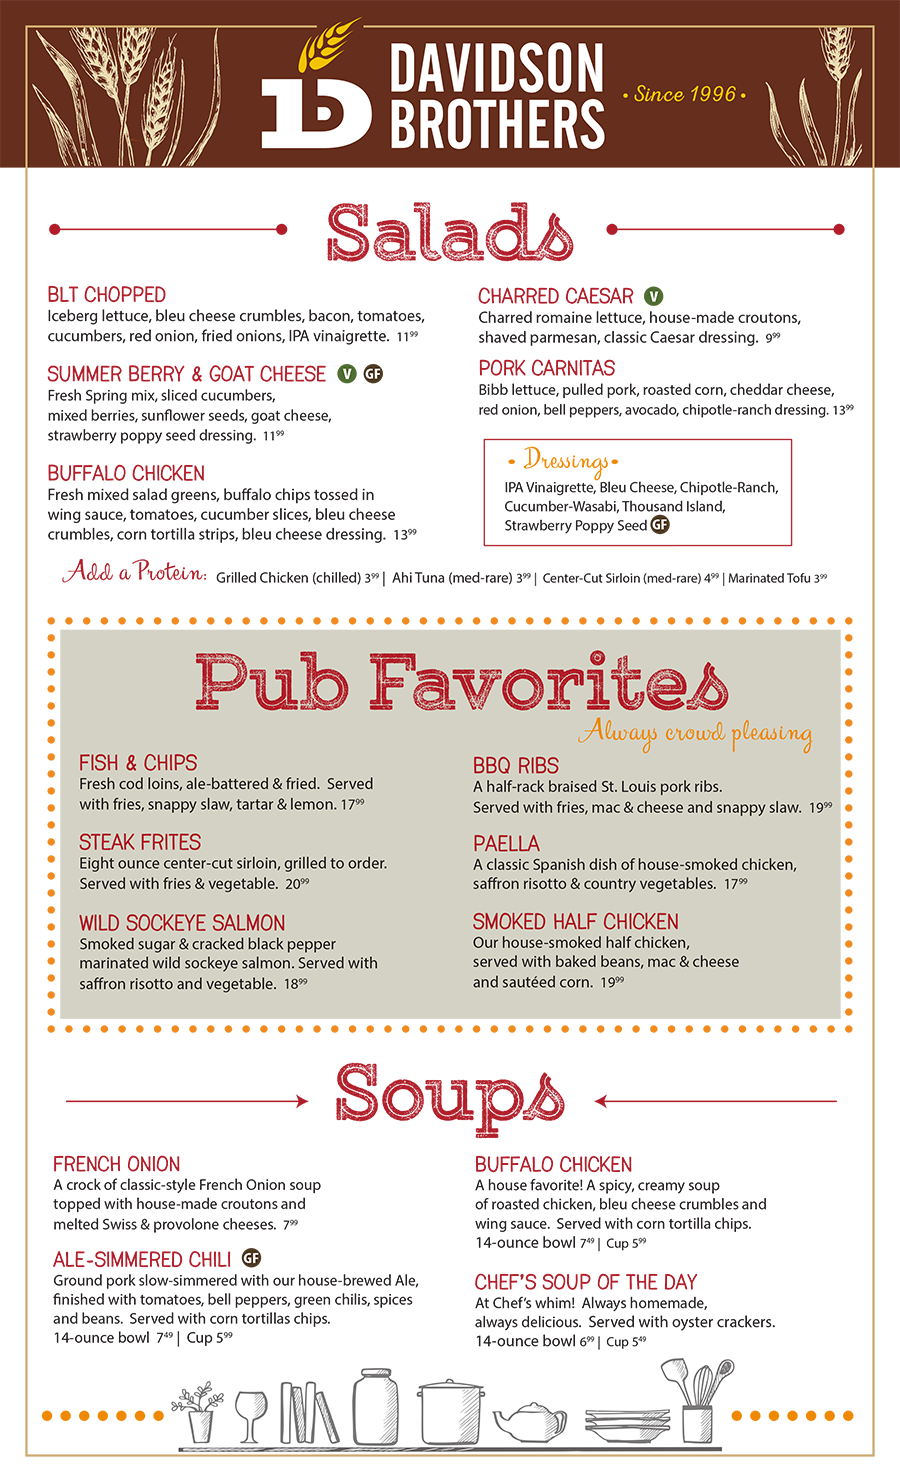 Davidson Brothers Pub Favorites Menu